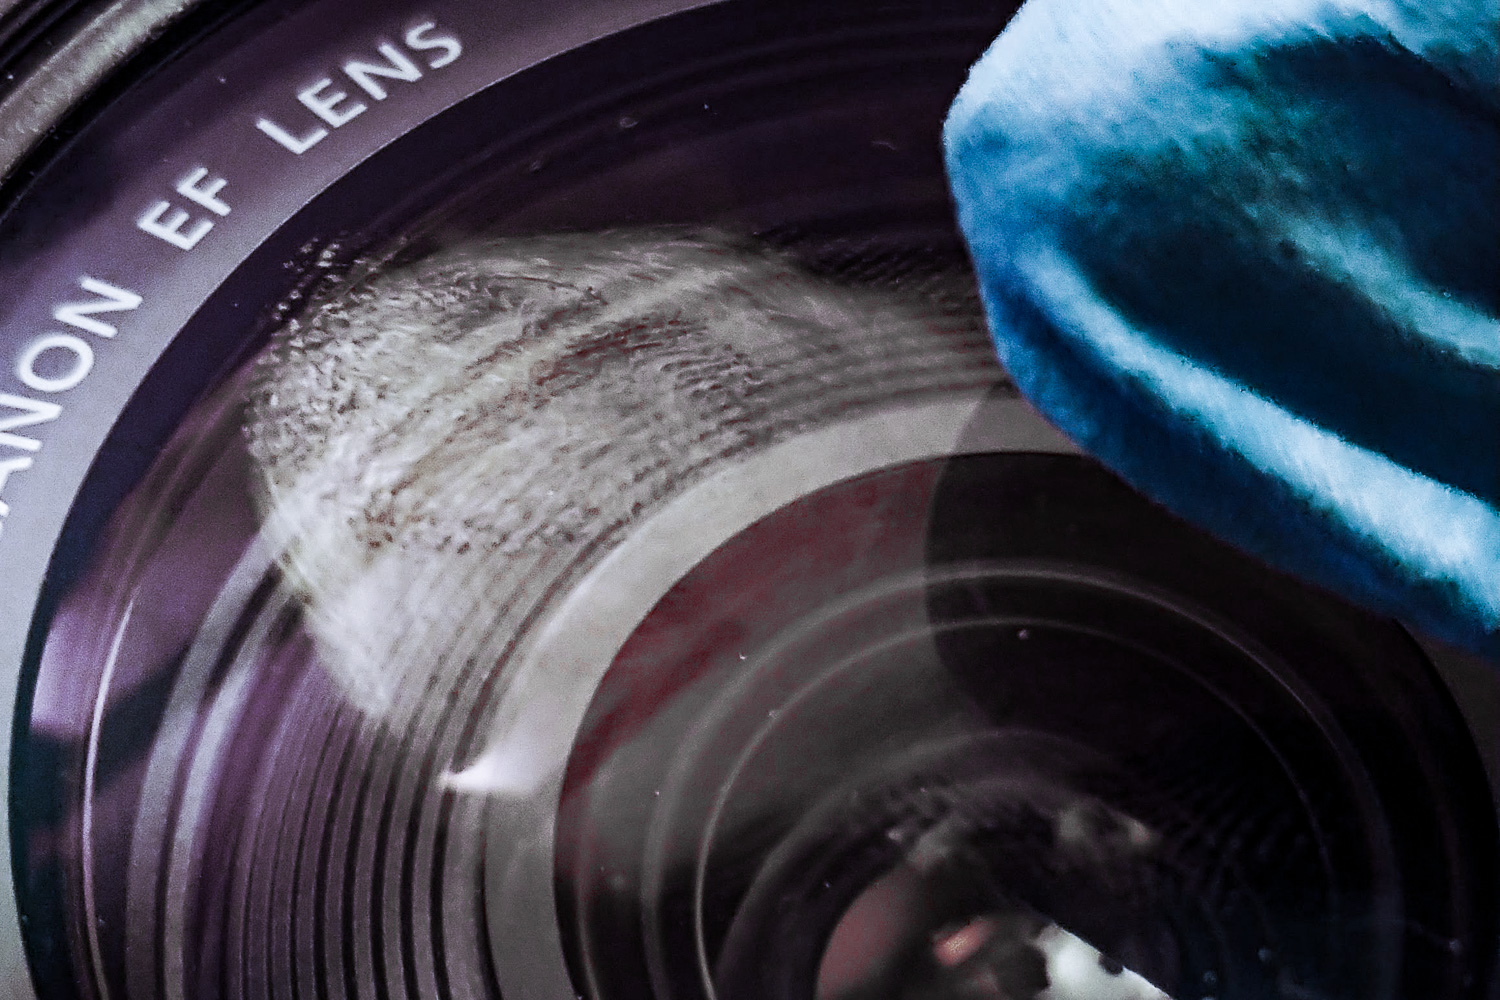 Image: A smudge on your lens can ruin an entire photo session if it goes undetected. Clean your lens...